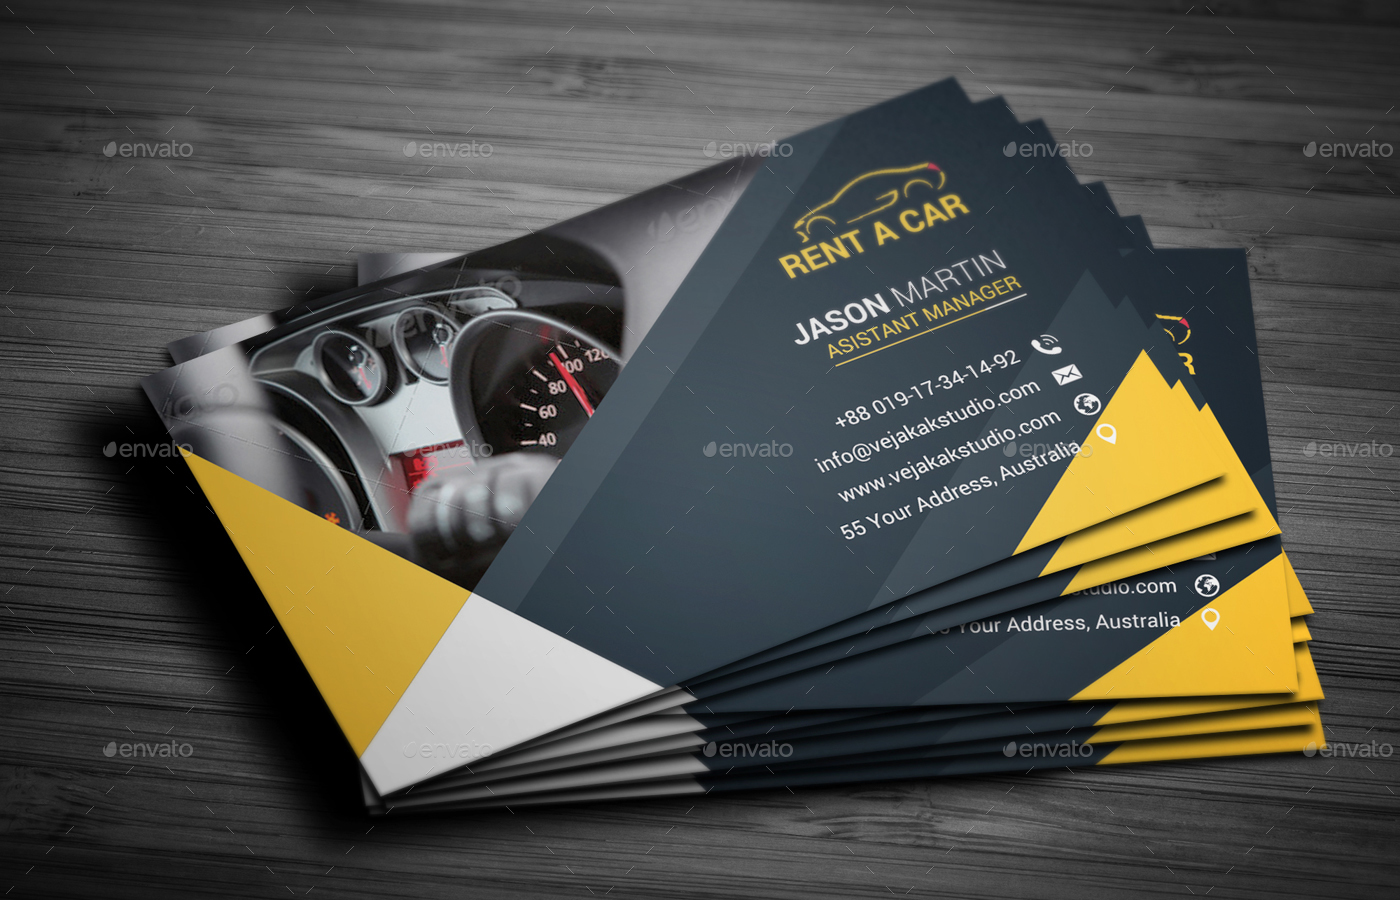 Rent a car business card by vejakakstudio graphicriver rent a car business card industry specific business cards preview01g magicingreecefo Images